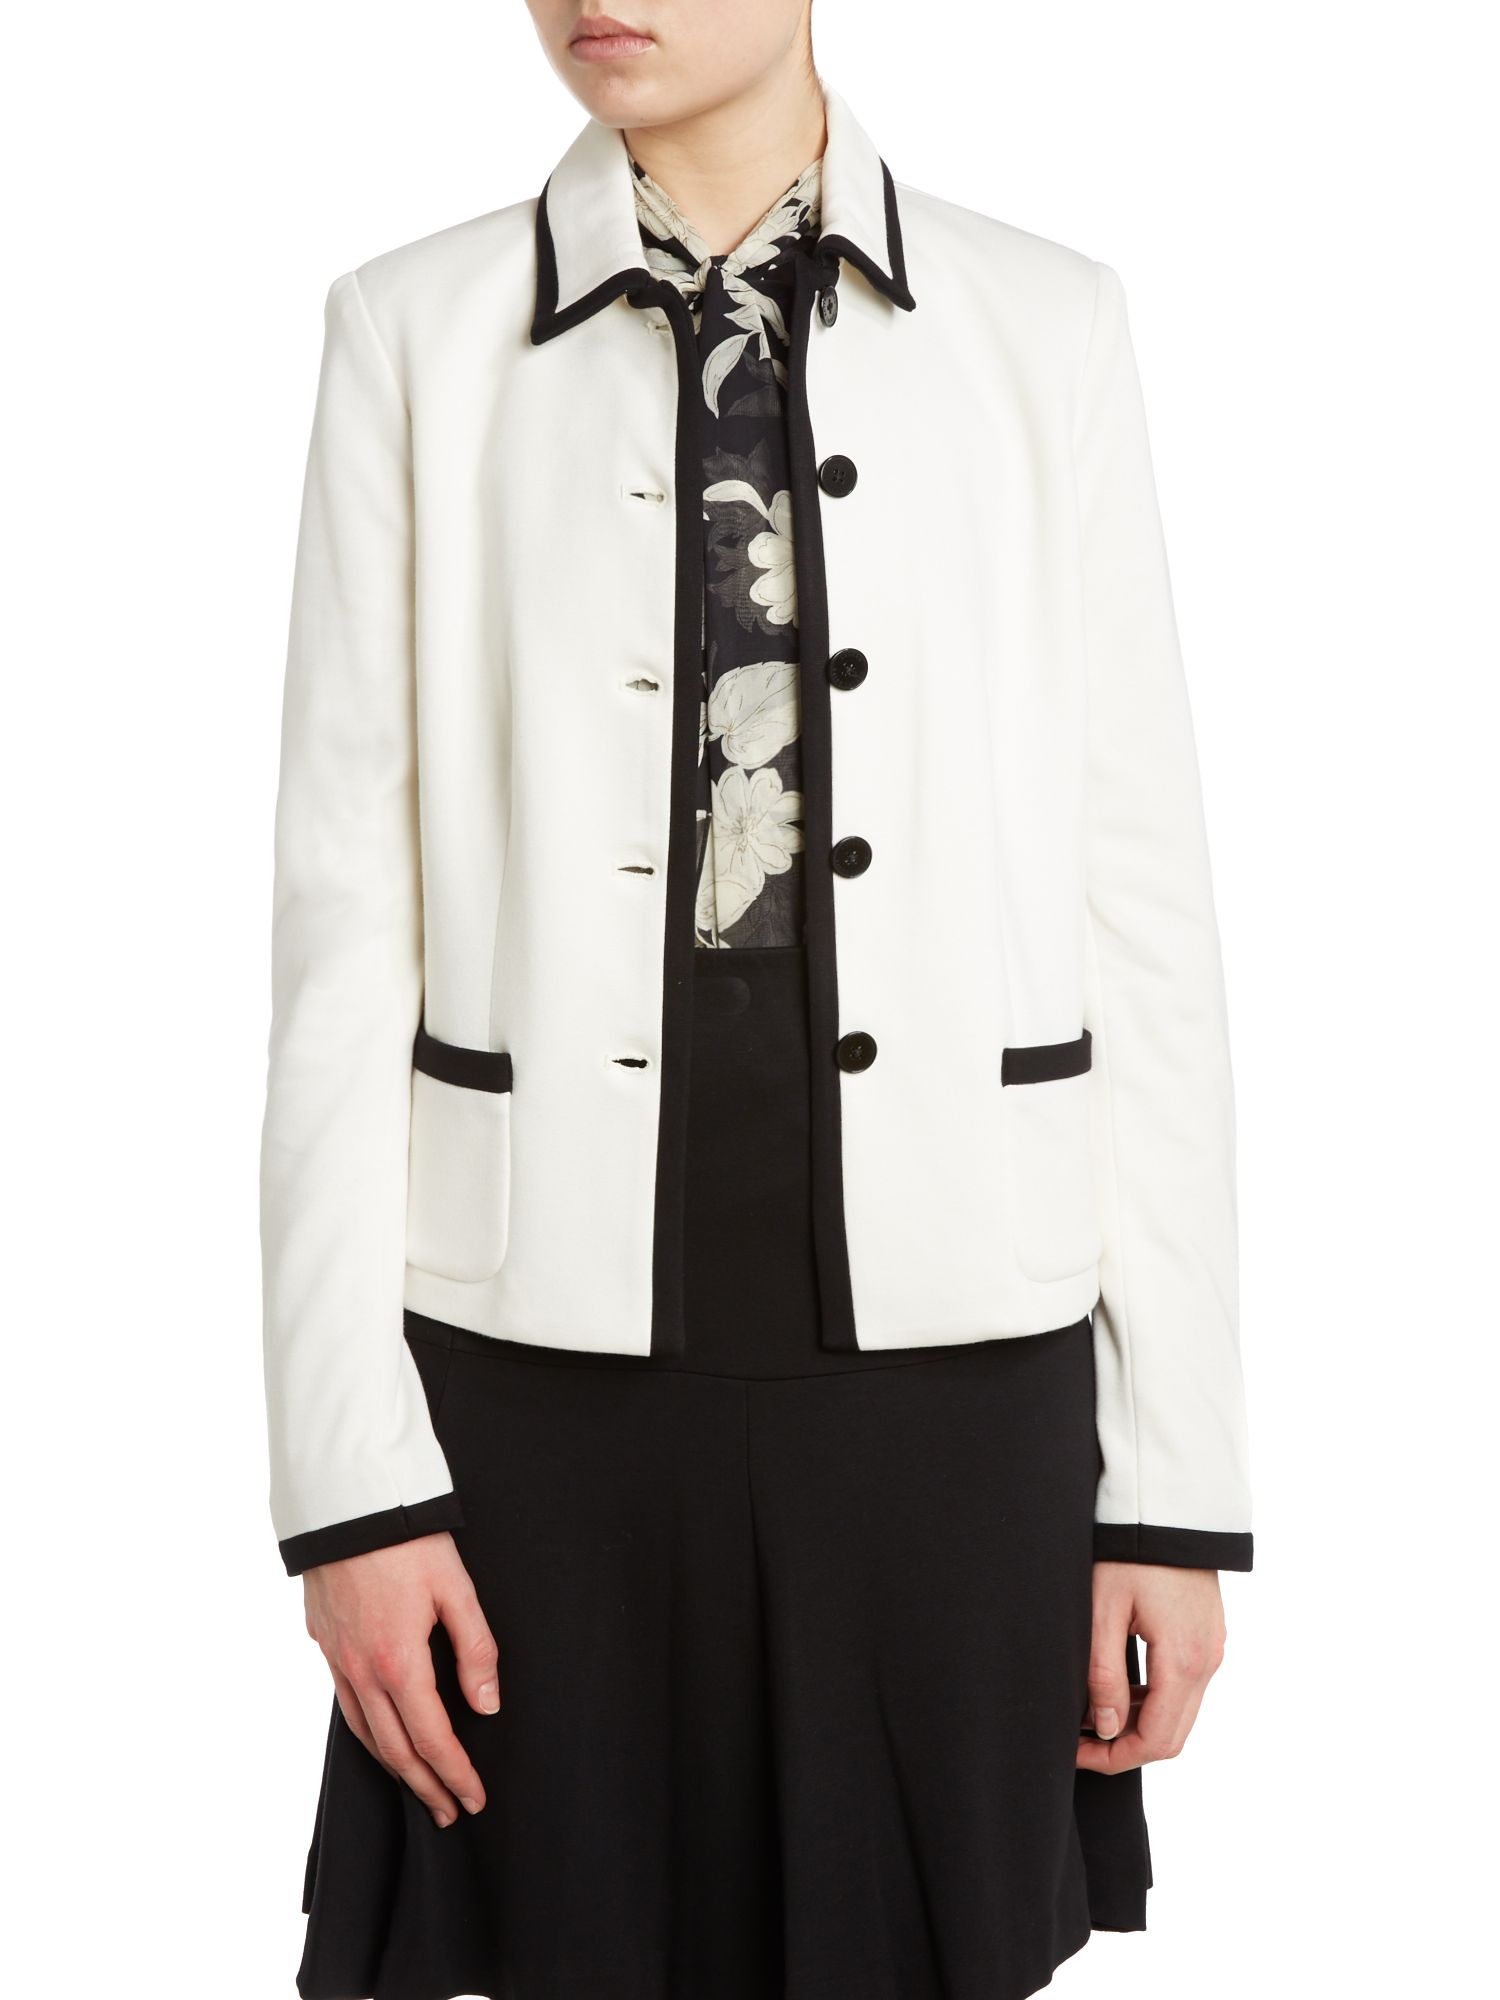 Long sleeved jacket with contrast trim